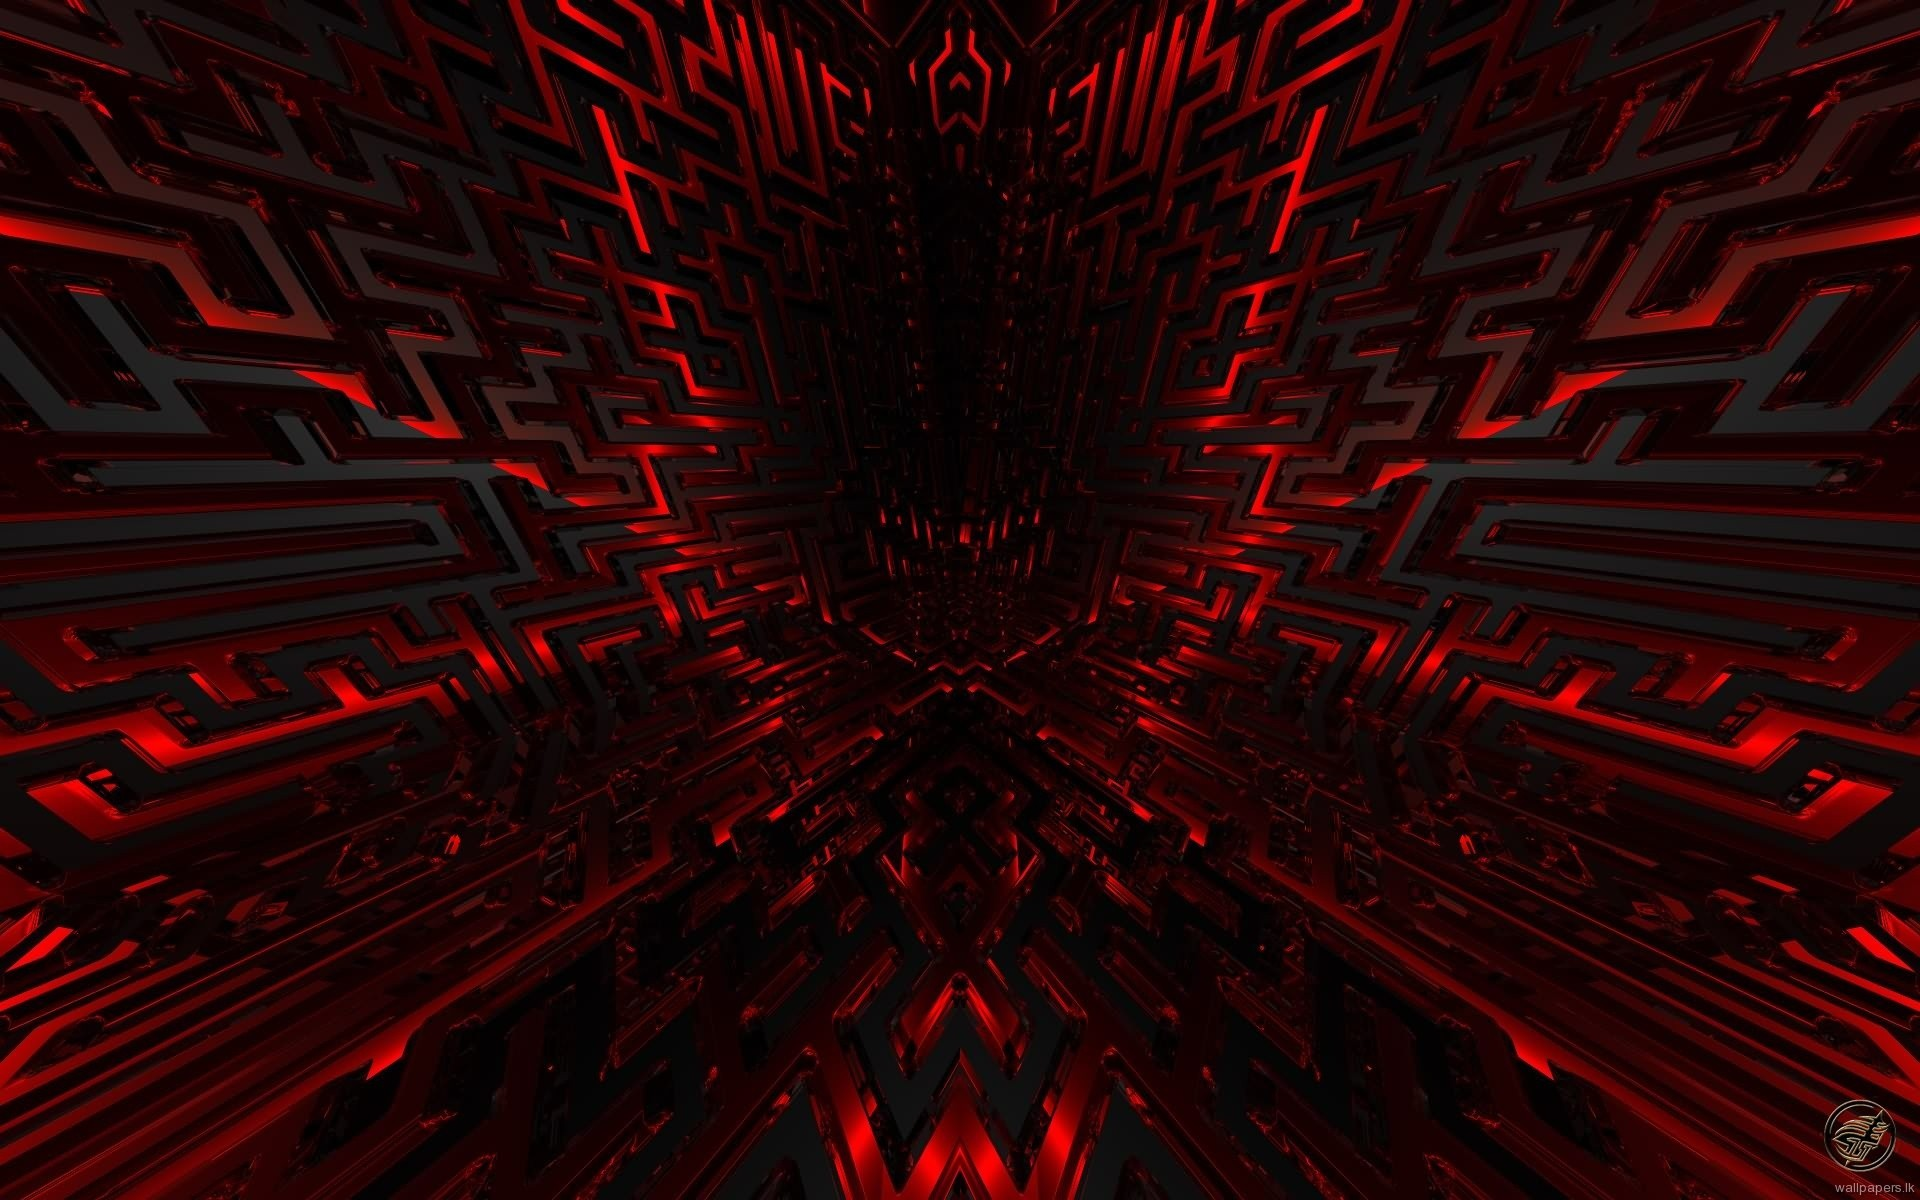 3D Red And Black Background Images Hd Wallpapers .